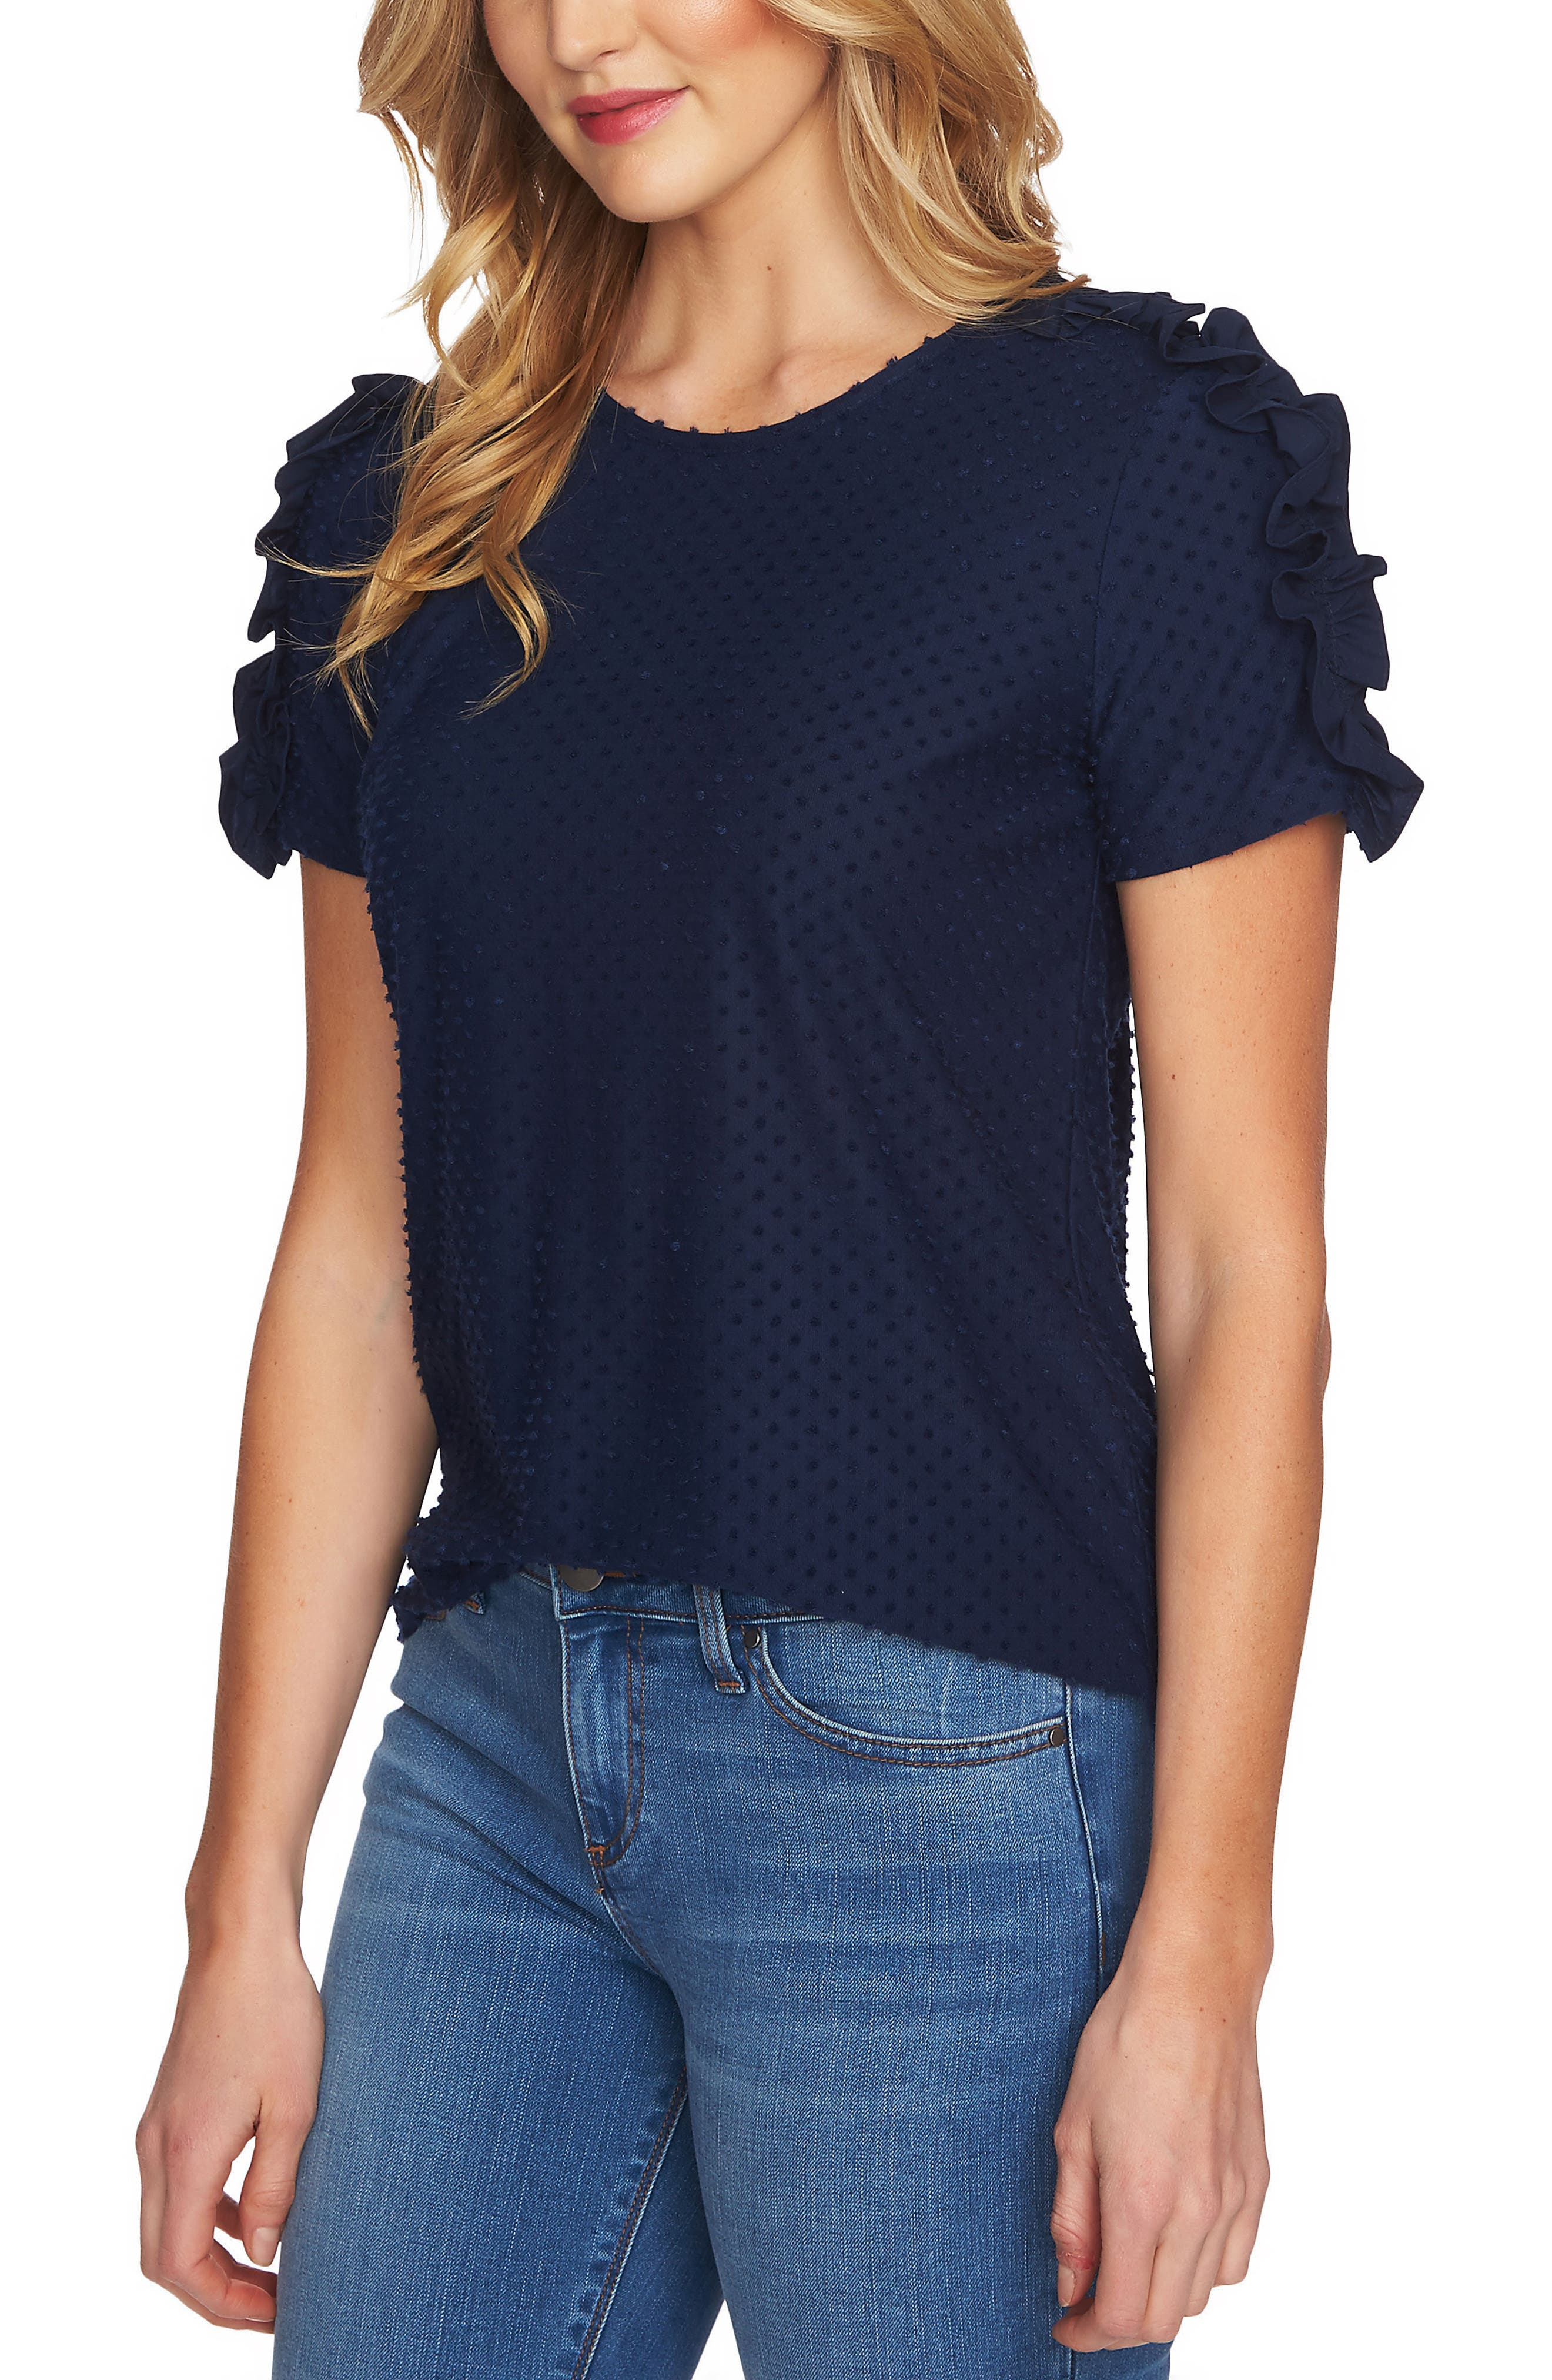 Alternate Image 1 Selected - CeCe Mixed Media Clip Knit Top